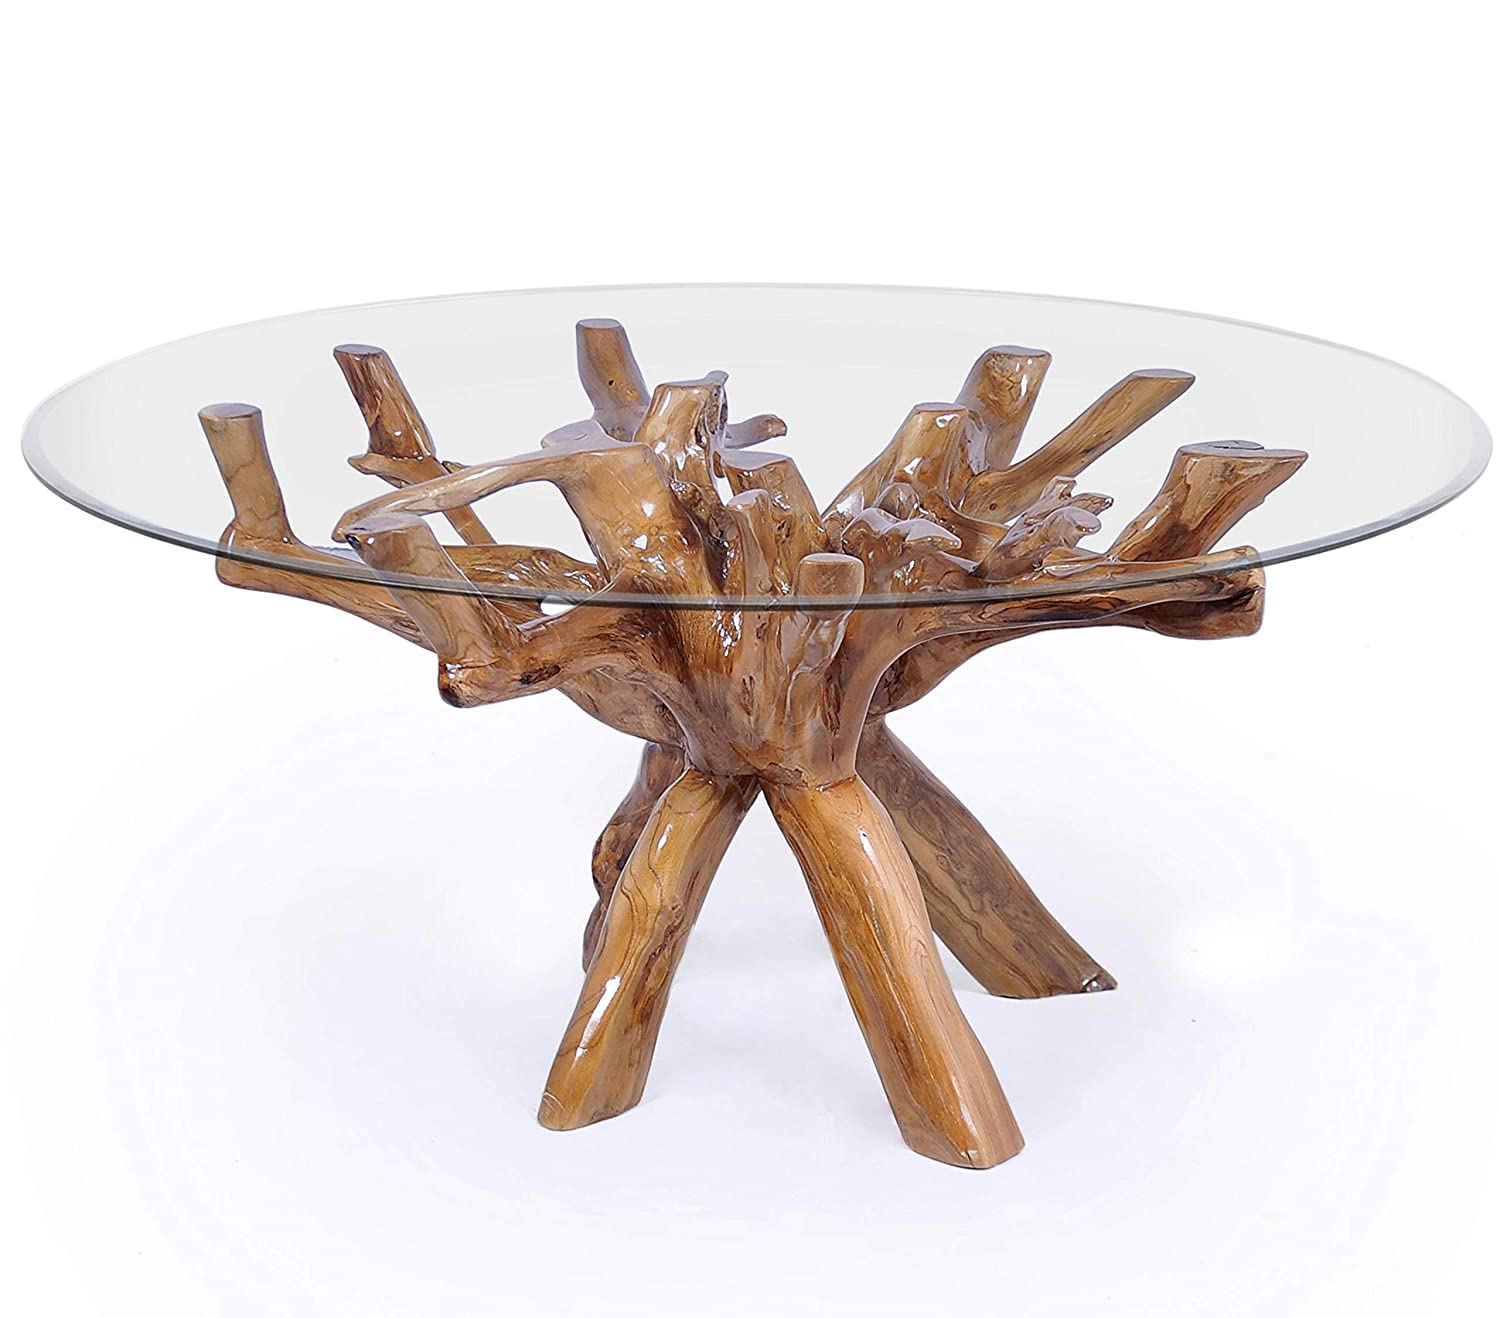 Teak Root Dining Table Including 48 Inch Glass Top Made by Chic Teak